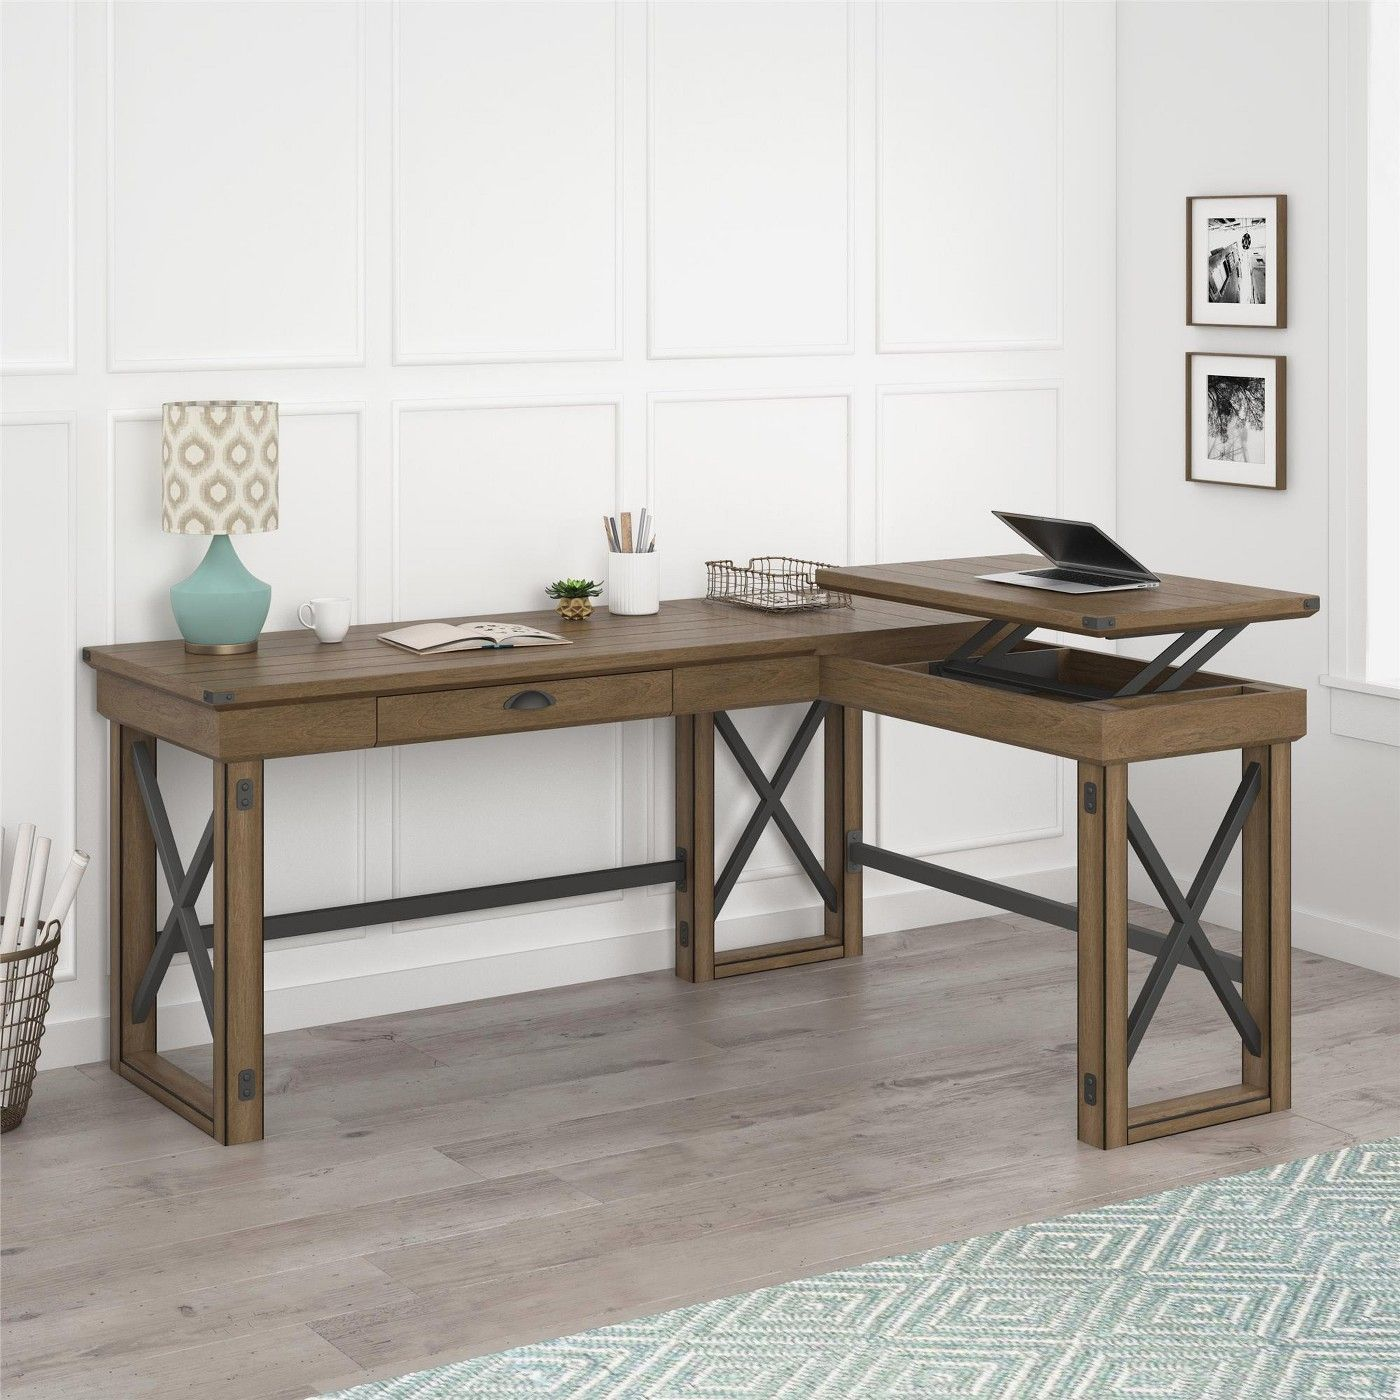 Wildwood L Shaped Desk with Lift Top - Ameriwood Home - image 49